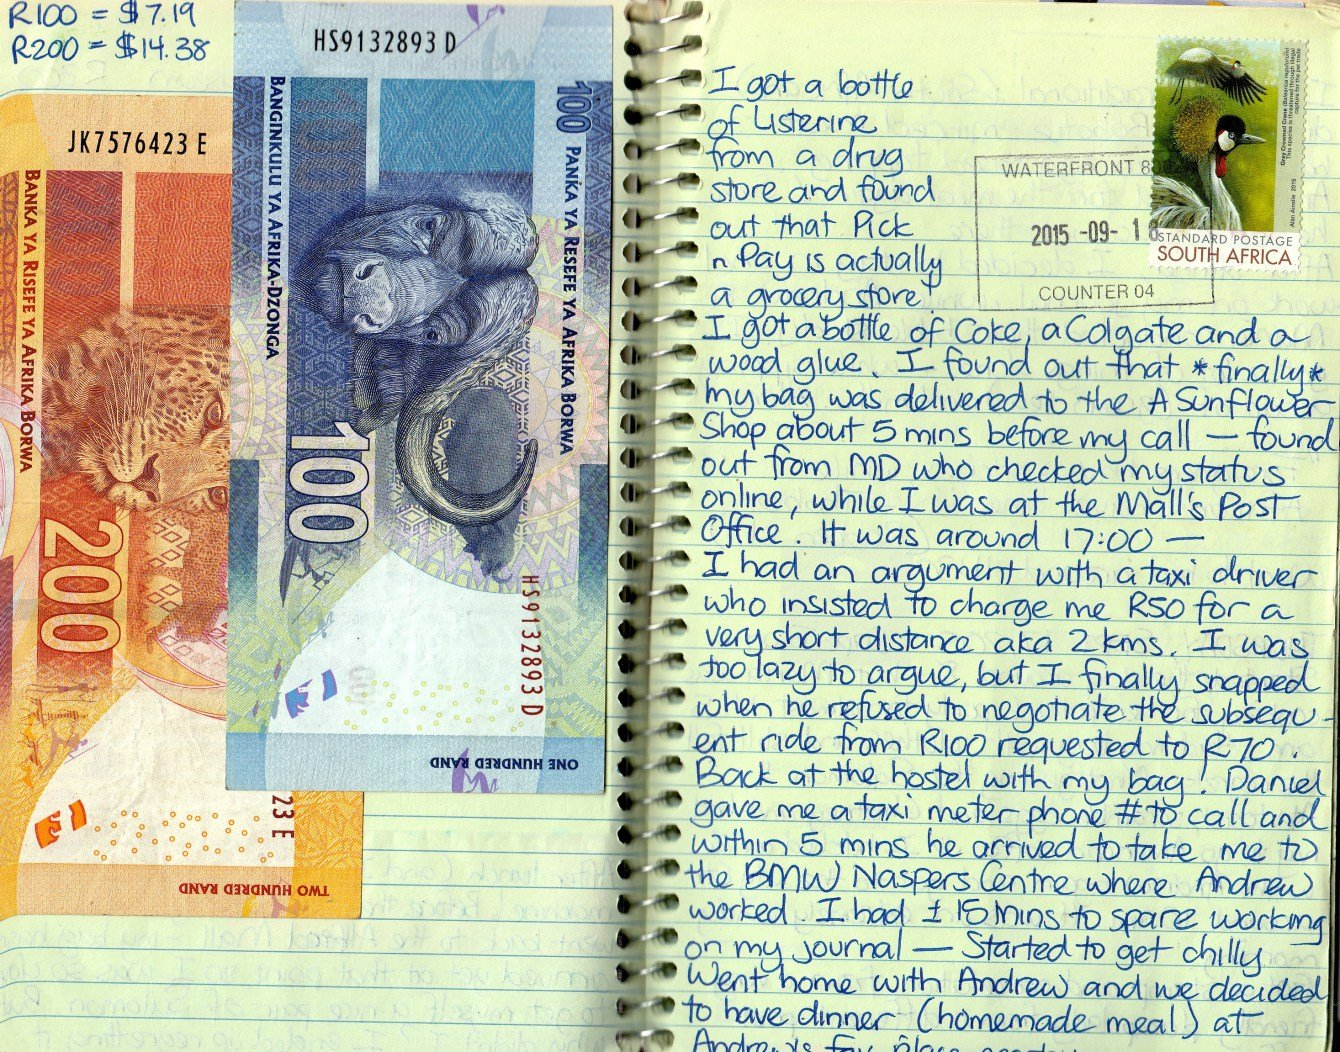 travel journal ideas: money